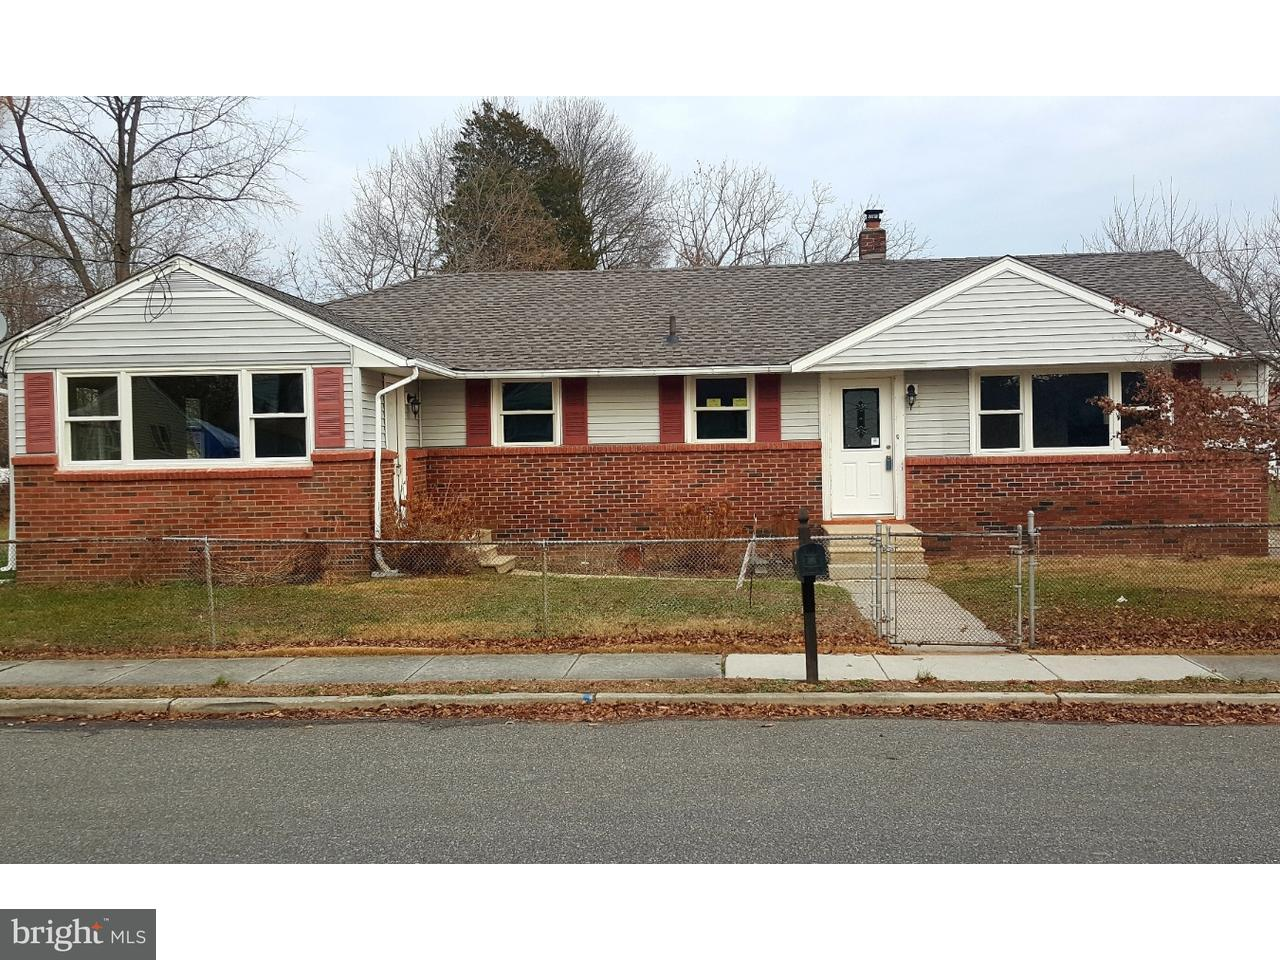 Single Family Home for Sale at 9 MCGUIRE Street Wrightstown, New Jersey 08562 United States